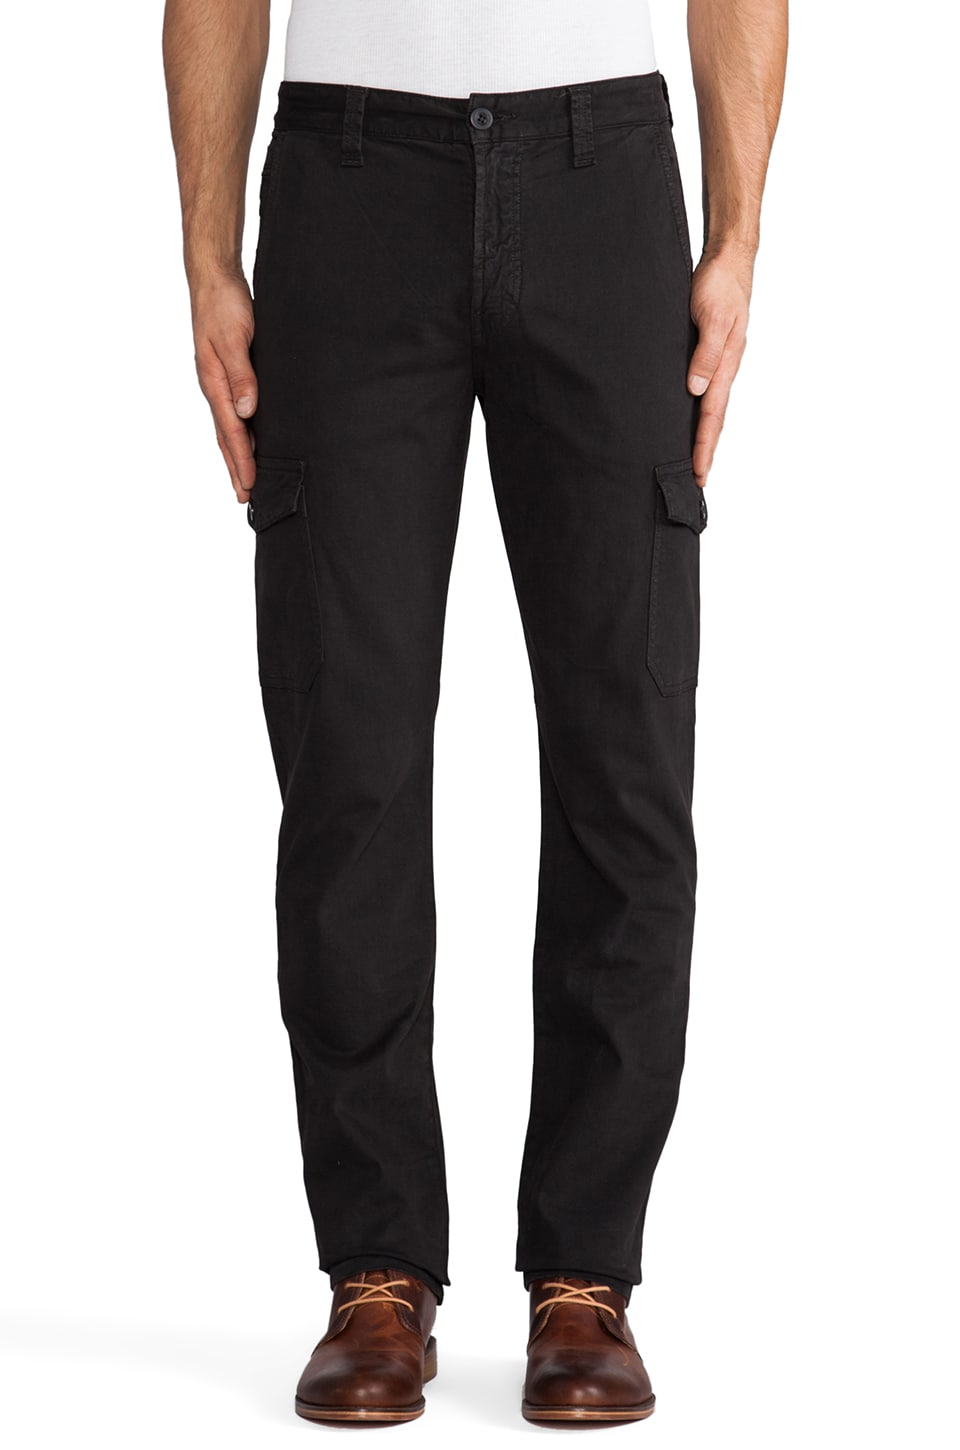 7 For All Mankind Carsen Cargo in Gunmetal